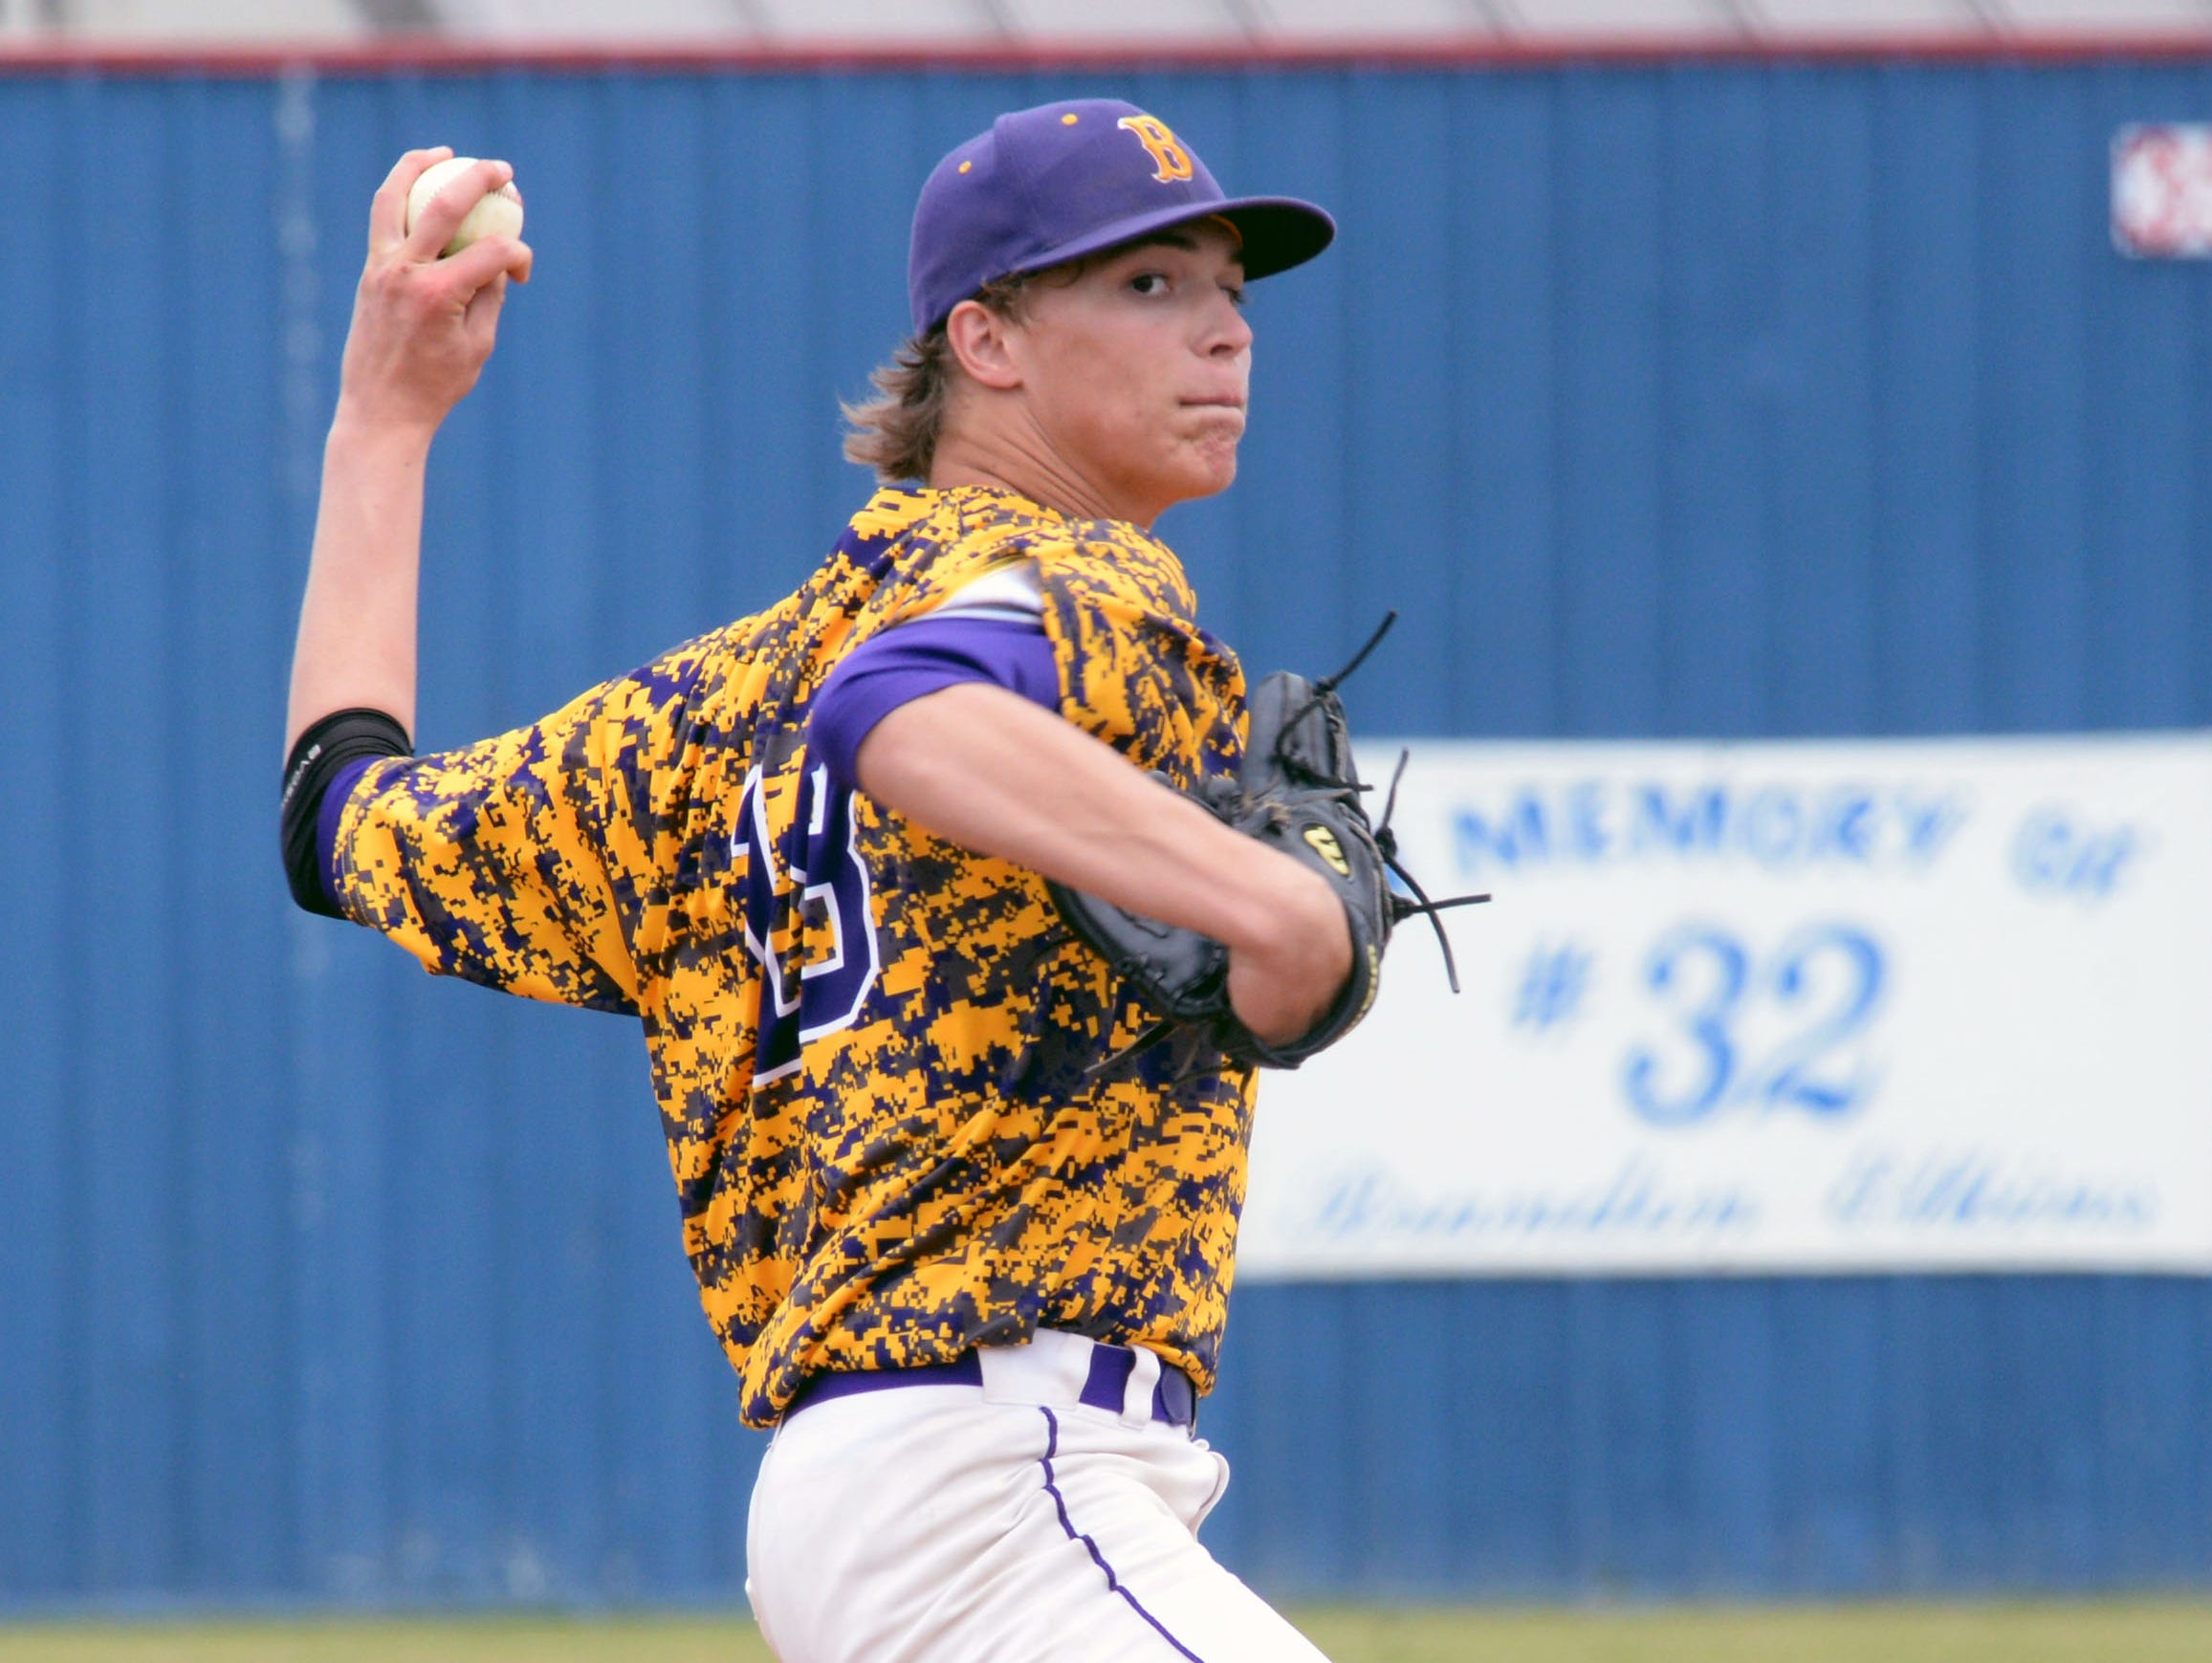 Jackson Rutledge finished a strong day from the mound against North DeSoto as Benton took the game 10-0.